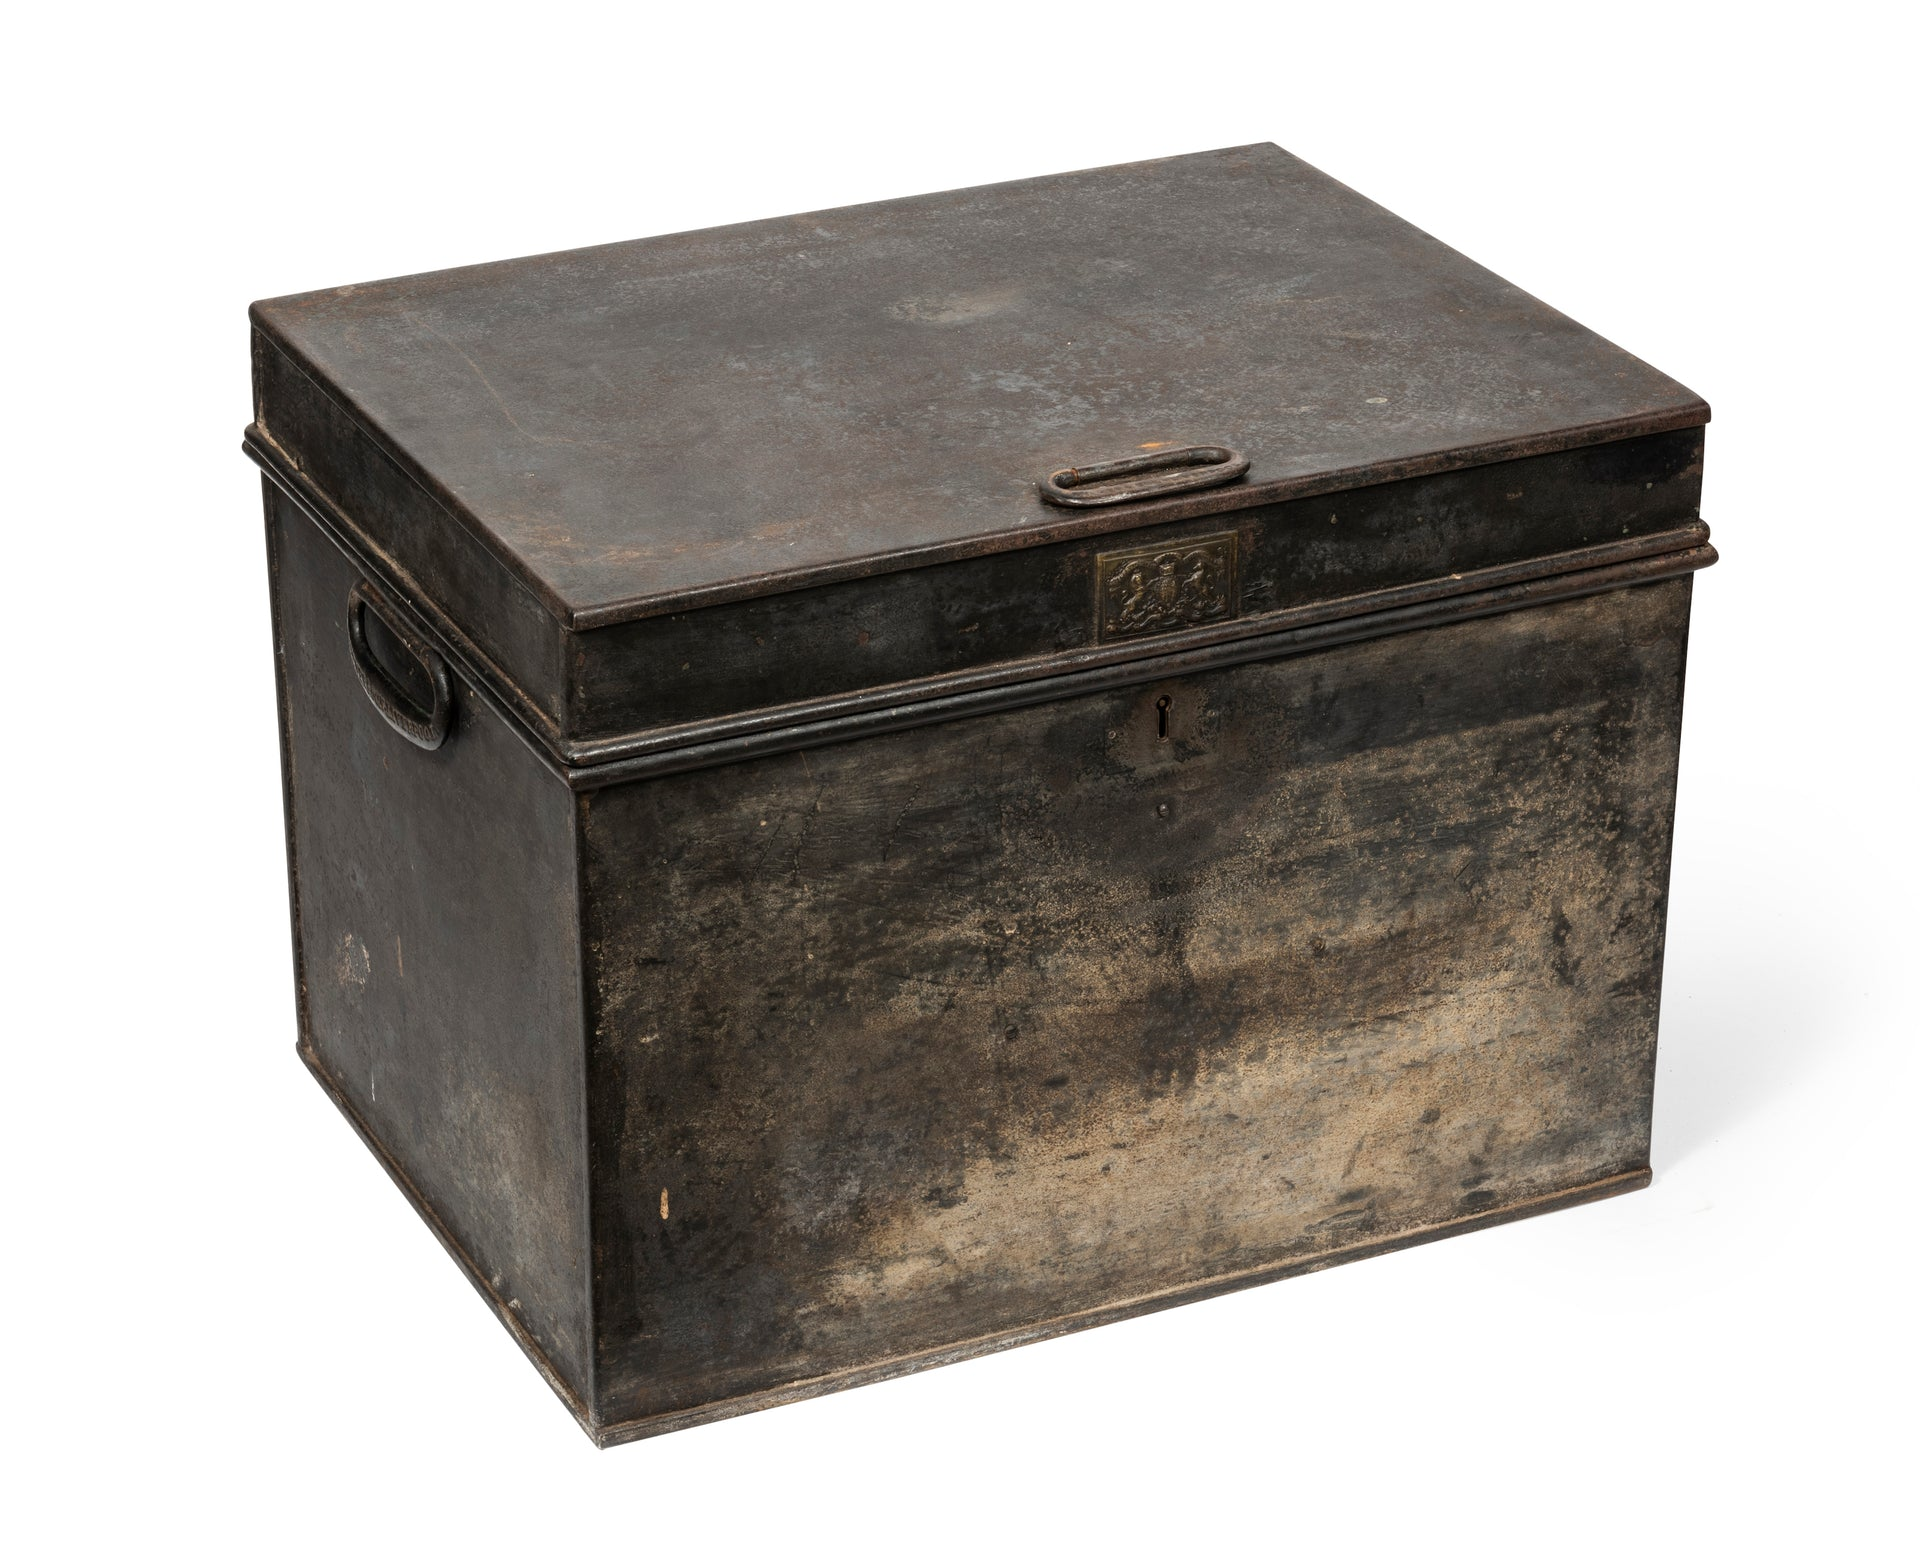 SOLD A metal safe box by Thomas Milner of London, English 19th Century